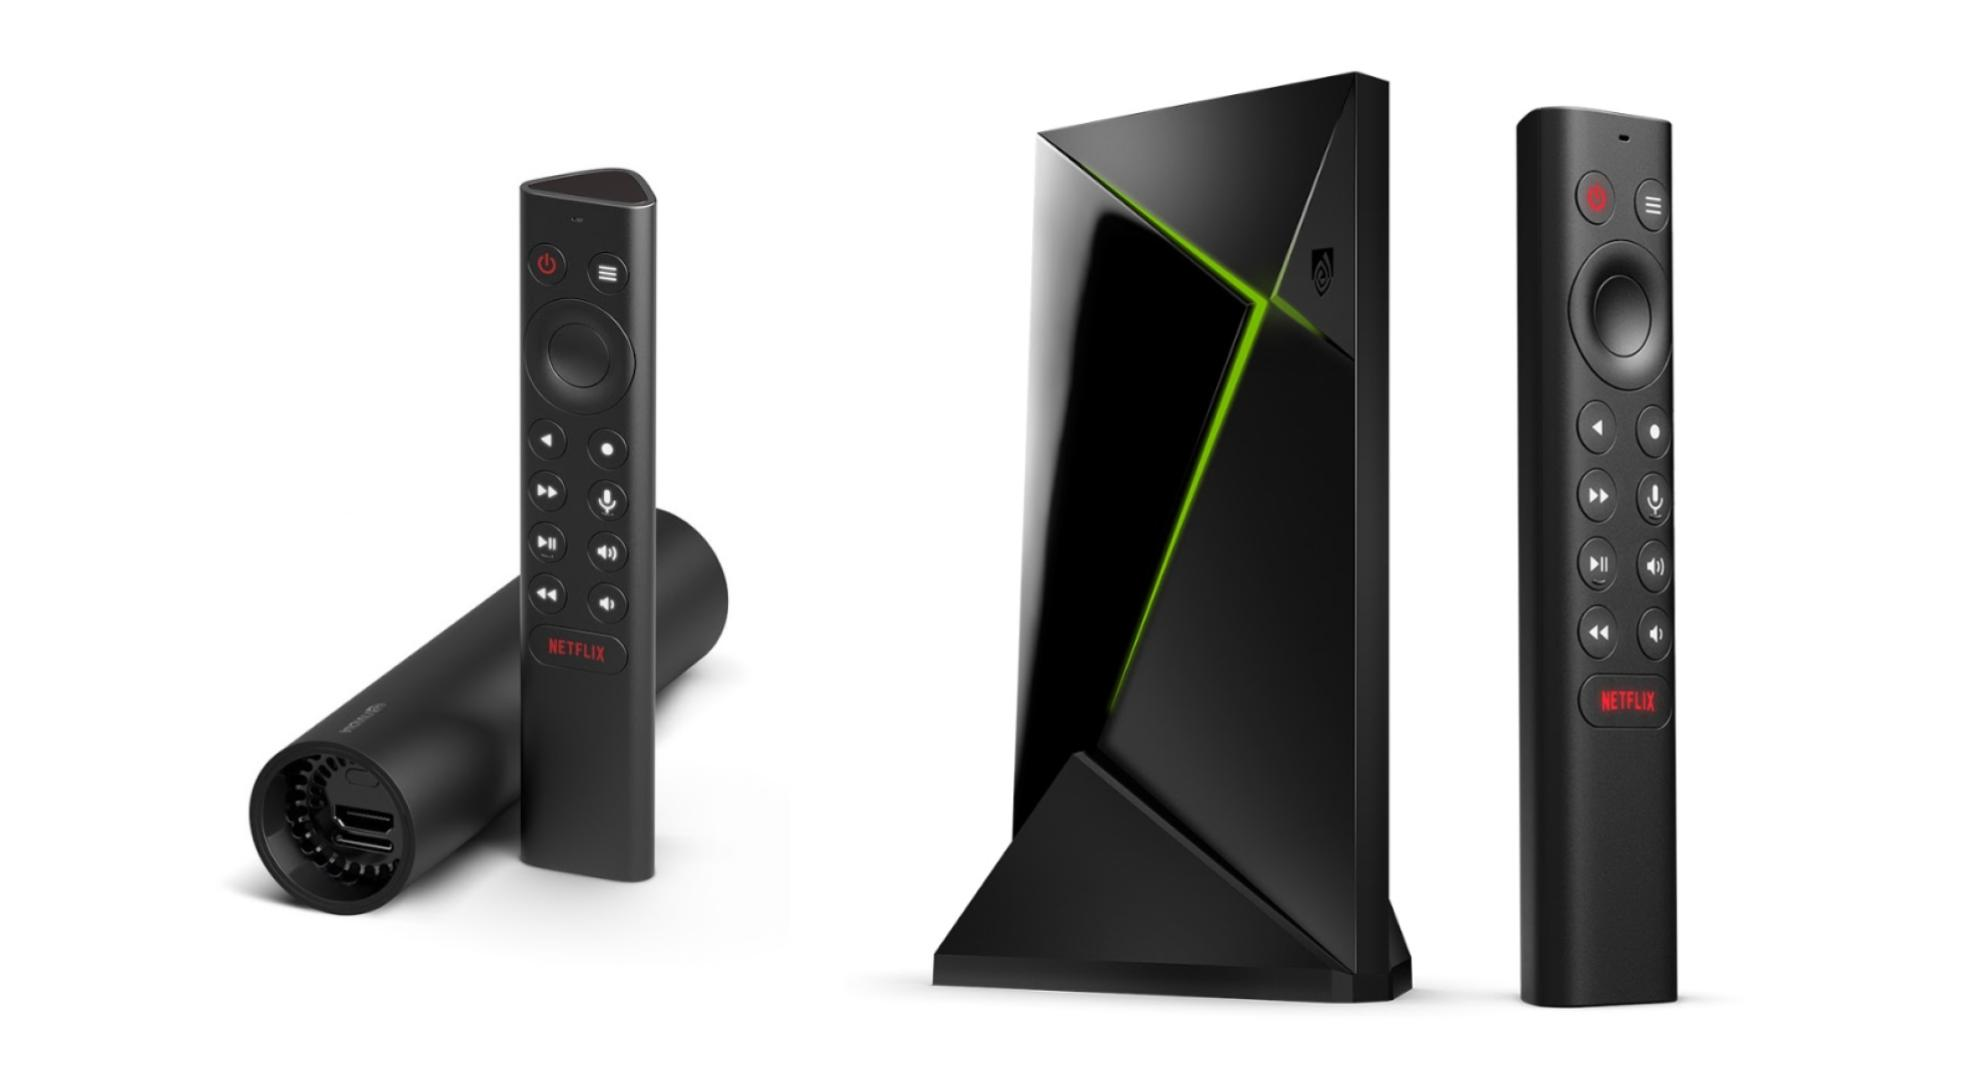 Les manettes Xbox Series X|S et PS5 maintenant compatibles — NVIDIA Shield